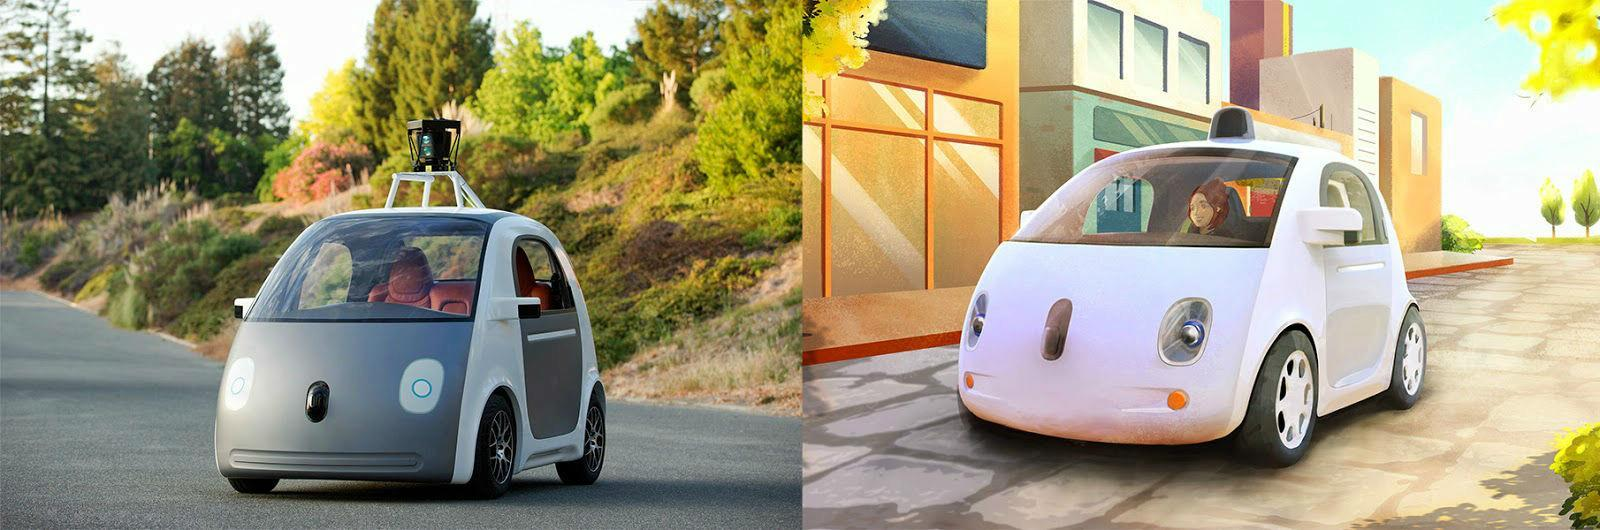 There's still one major problem with Google's self-driving